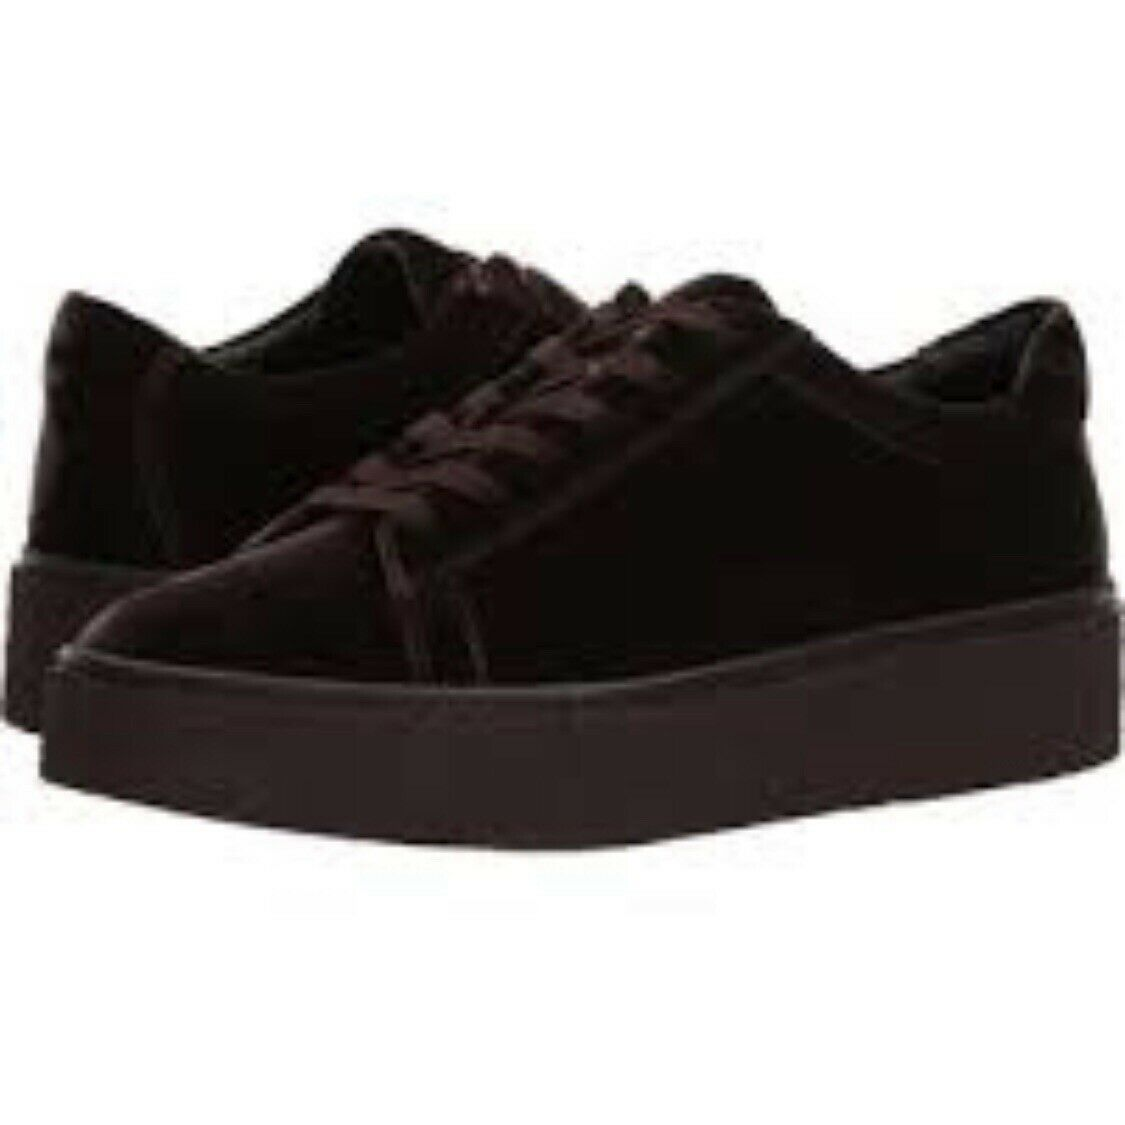 NEW (other) 295 VINCE Neela Women's Women's Women's Platform Sneaker Lace-up Brown Velvet Sz 6.5 e178c0